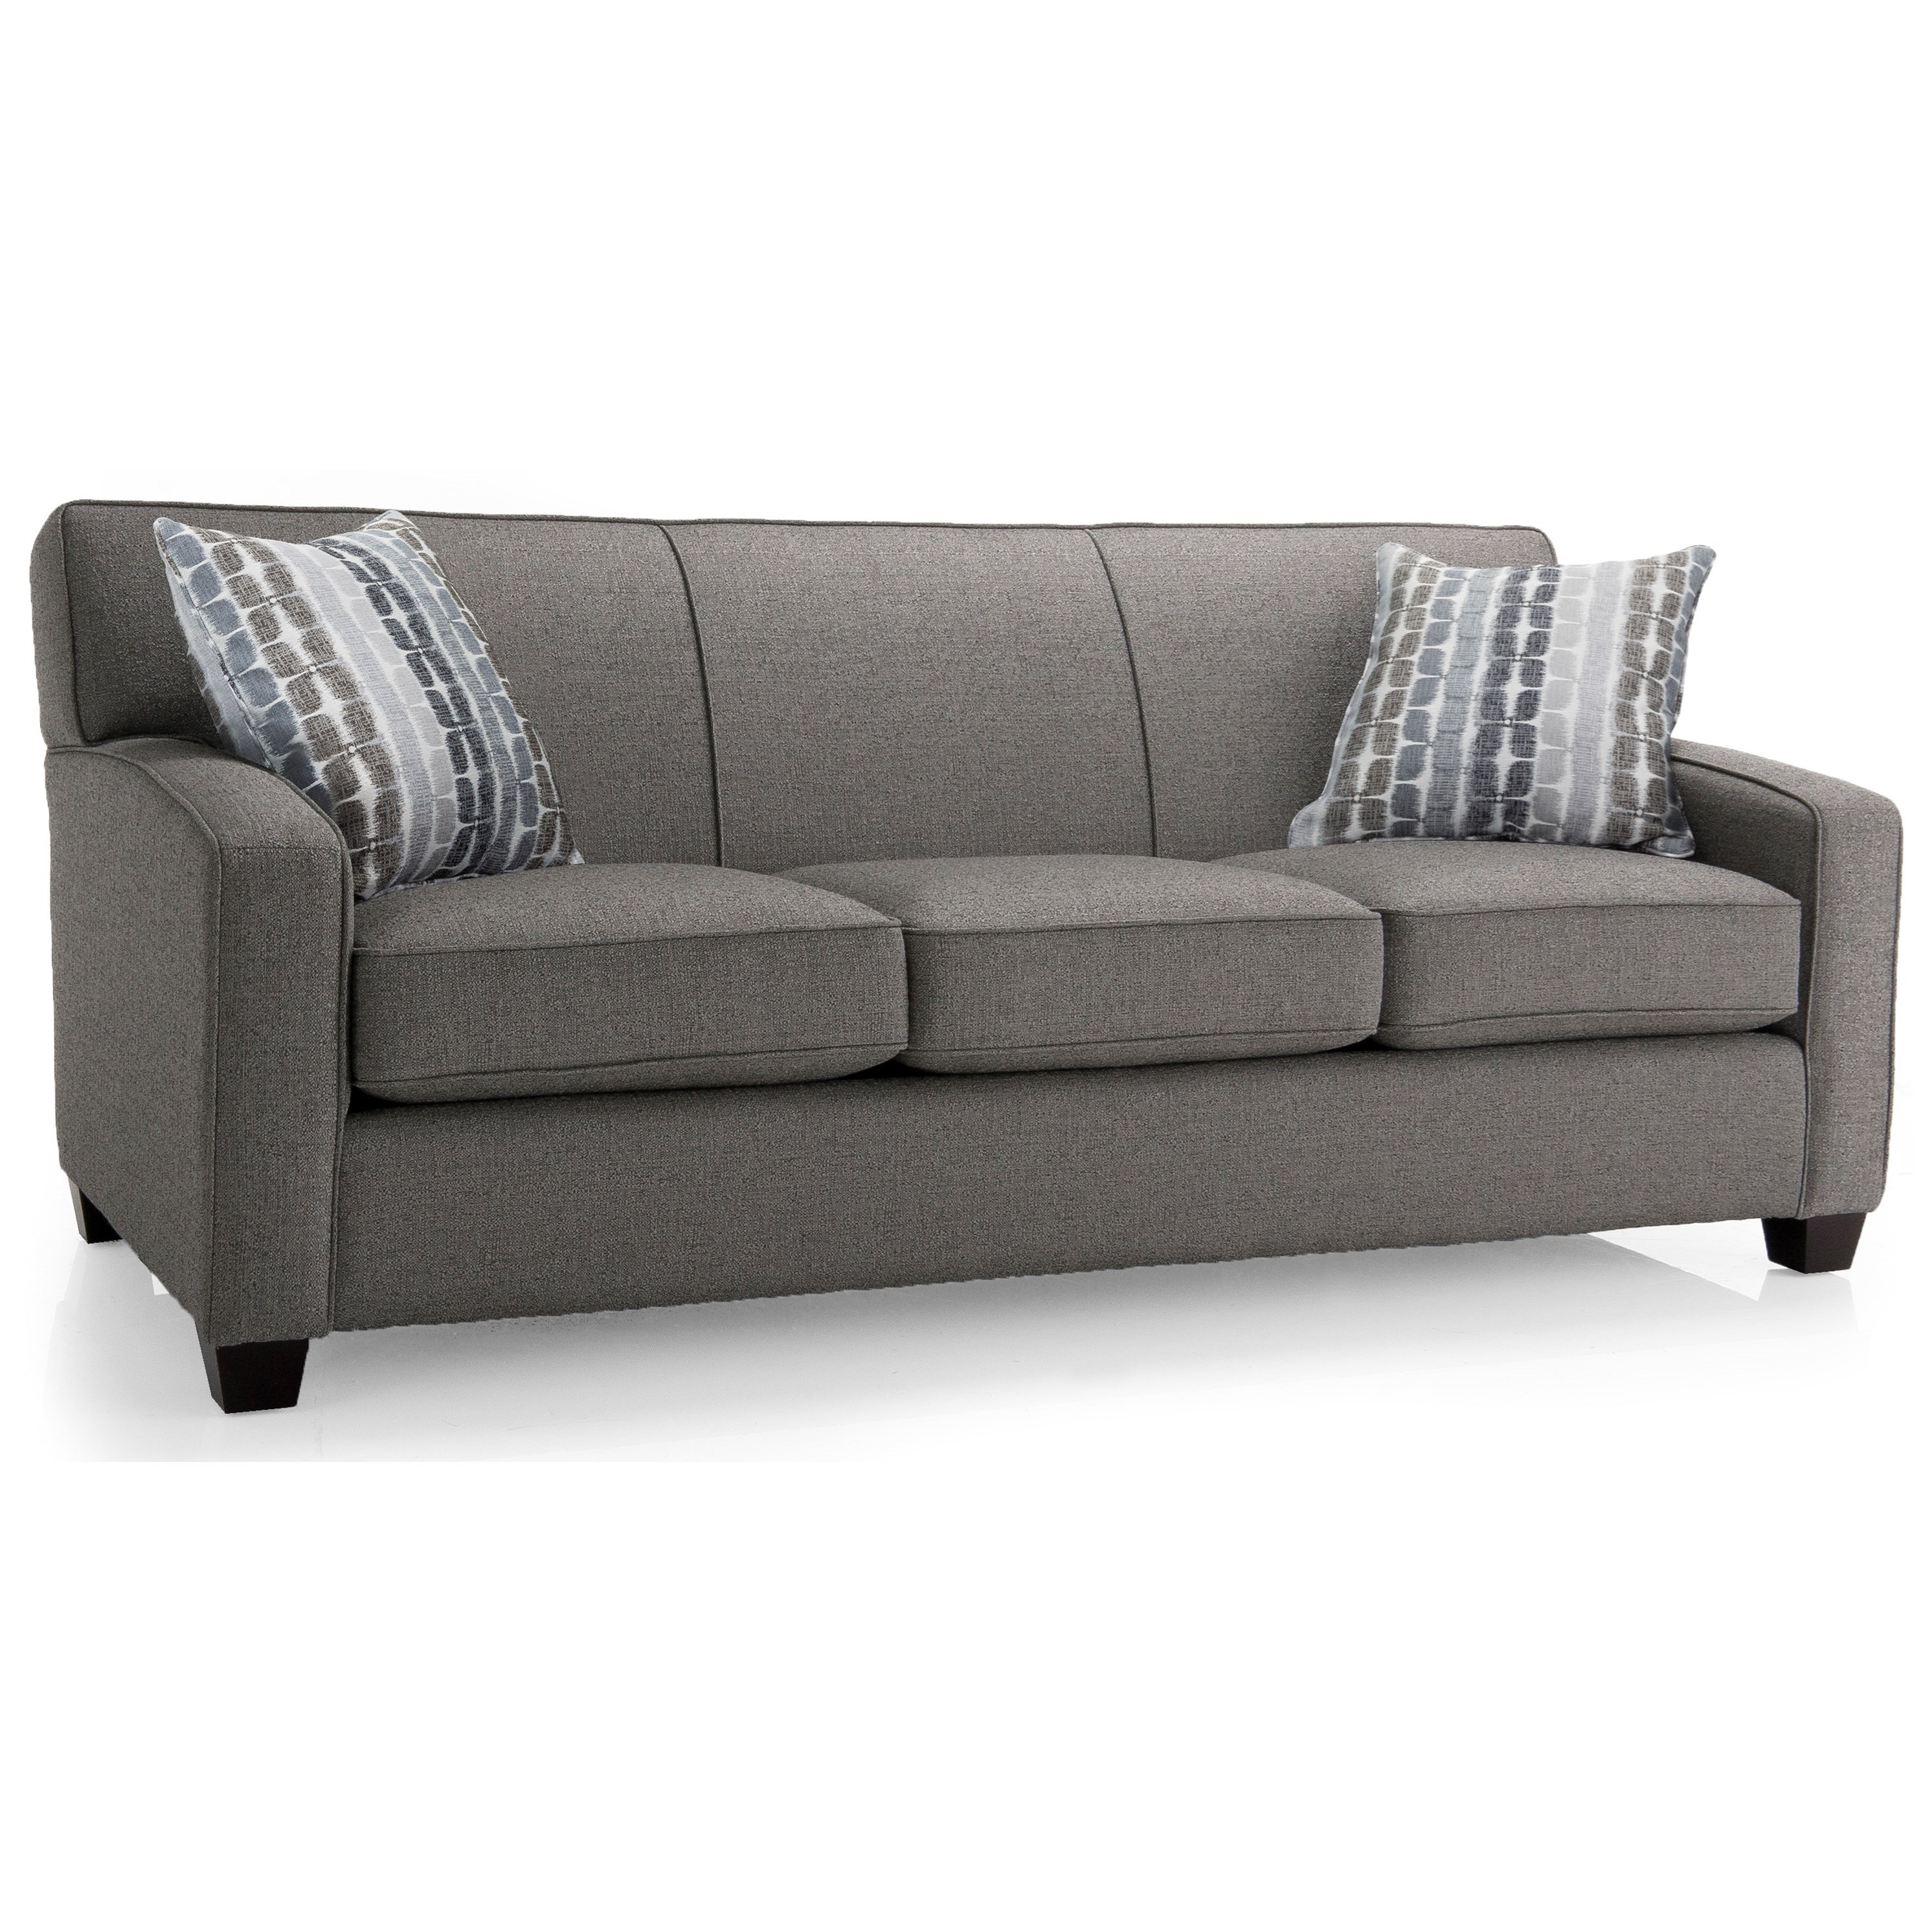 Nita Stationary Sofa by Taelor Designs at Bennett's Furniture and Mattresses